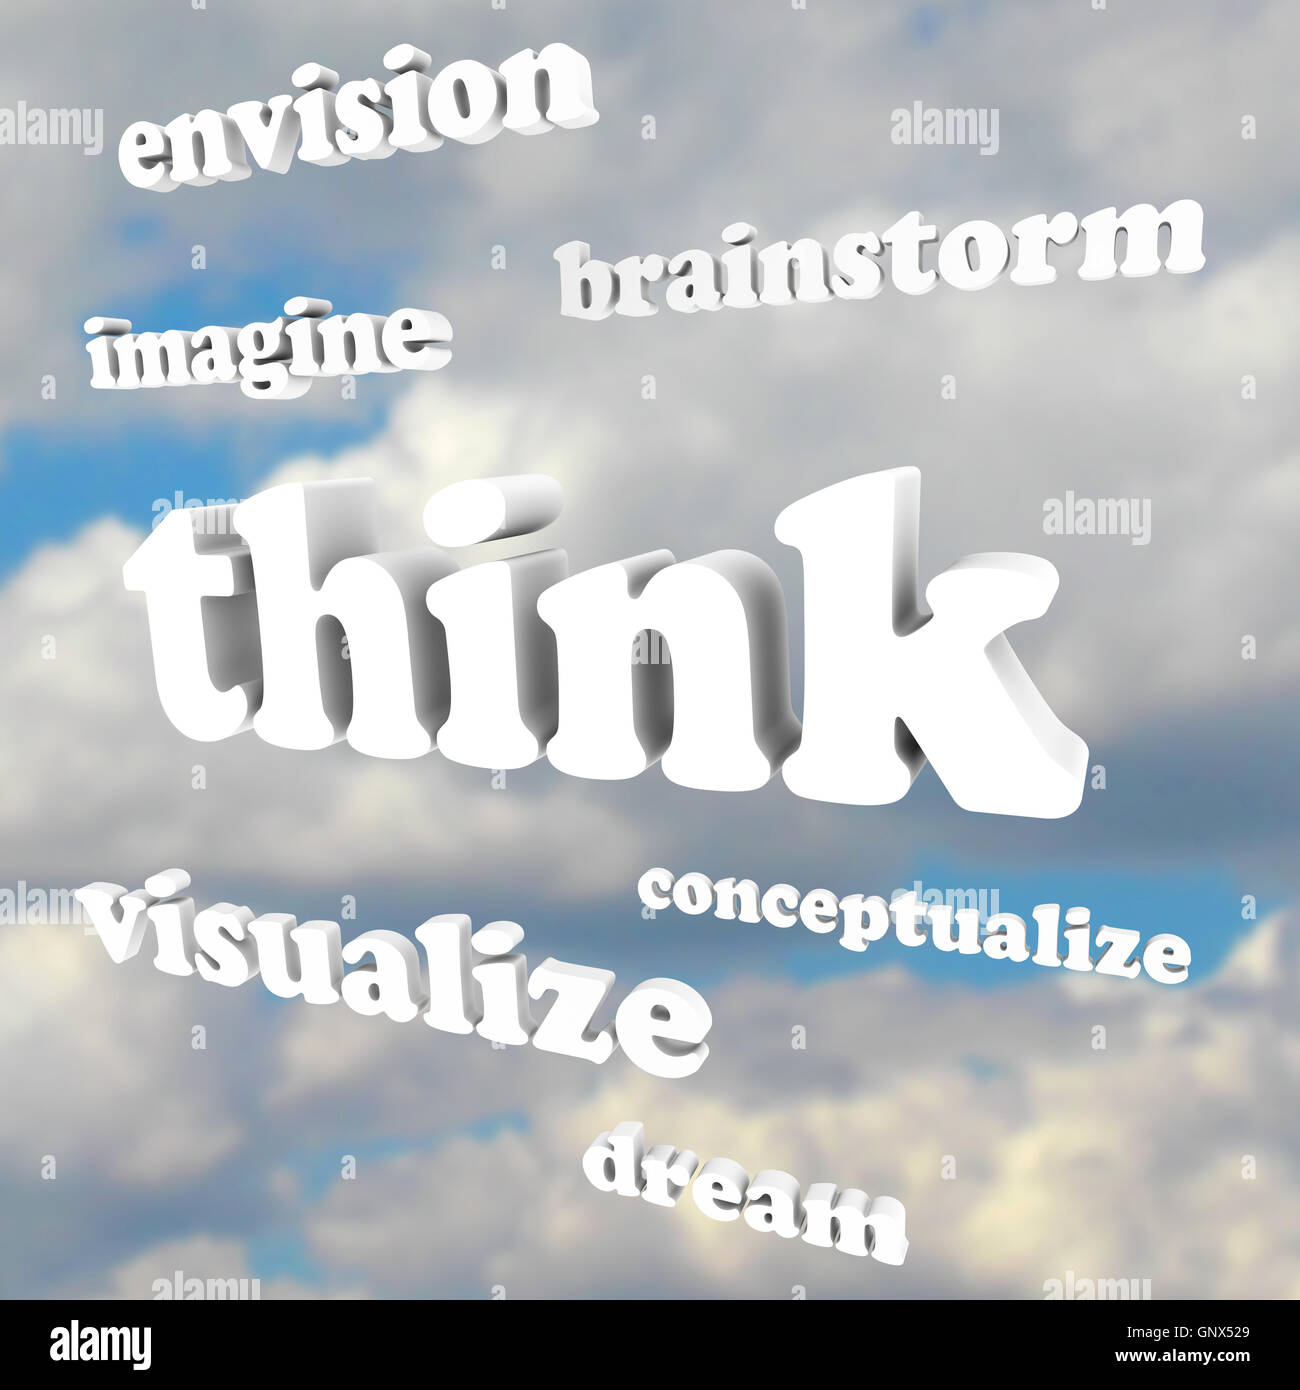 Think Words in Sky - Imagine New Ideas and Dreams - Stock Image